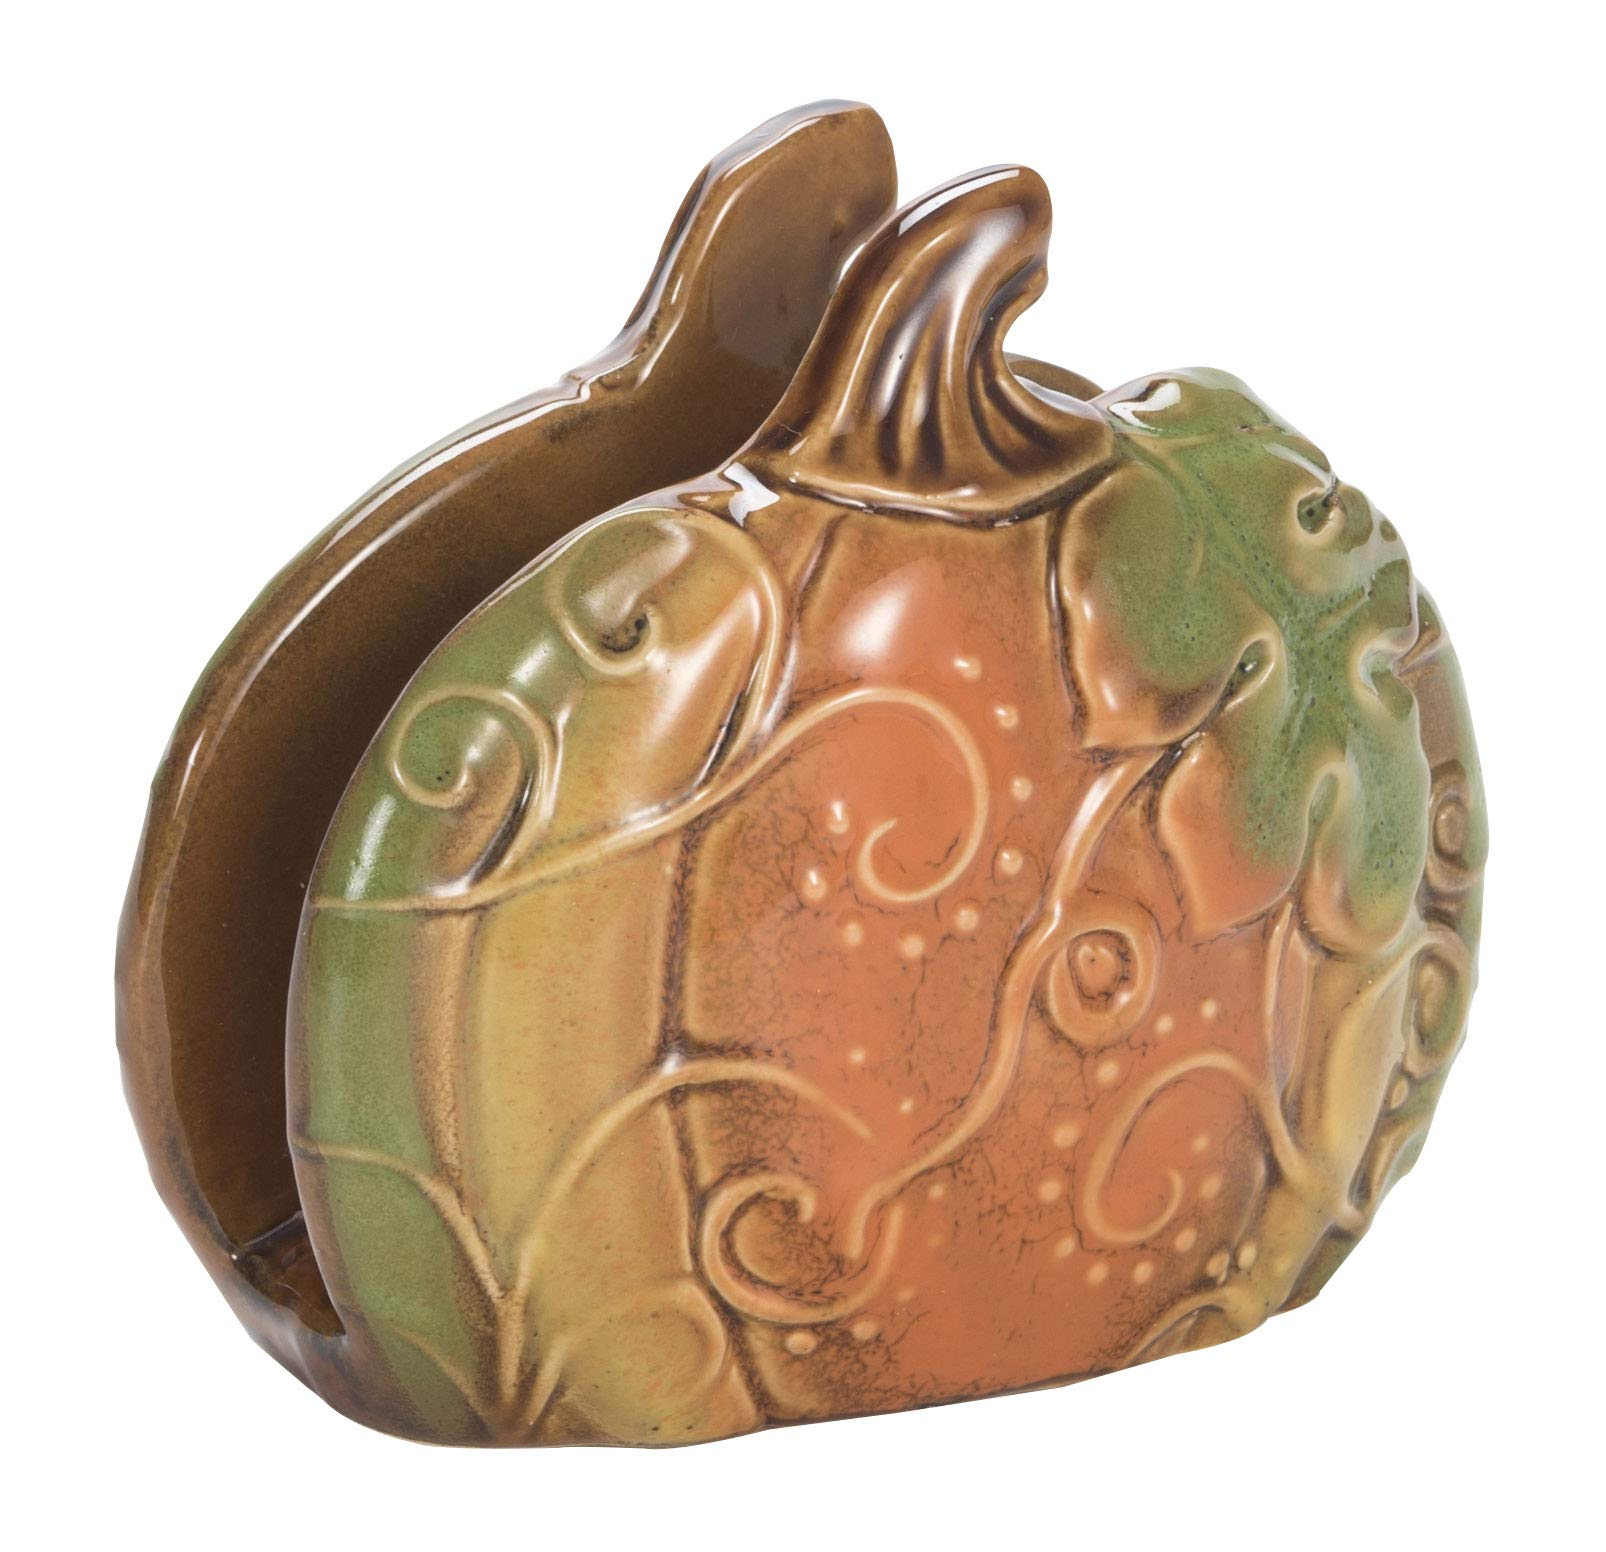 Woodland Greens Autumn Multicolored 5 x 4 Ceramic Harvest Napkin Holder